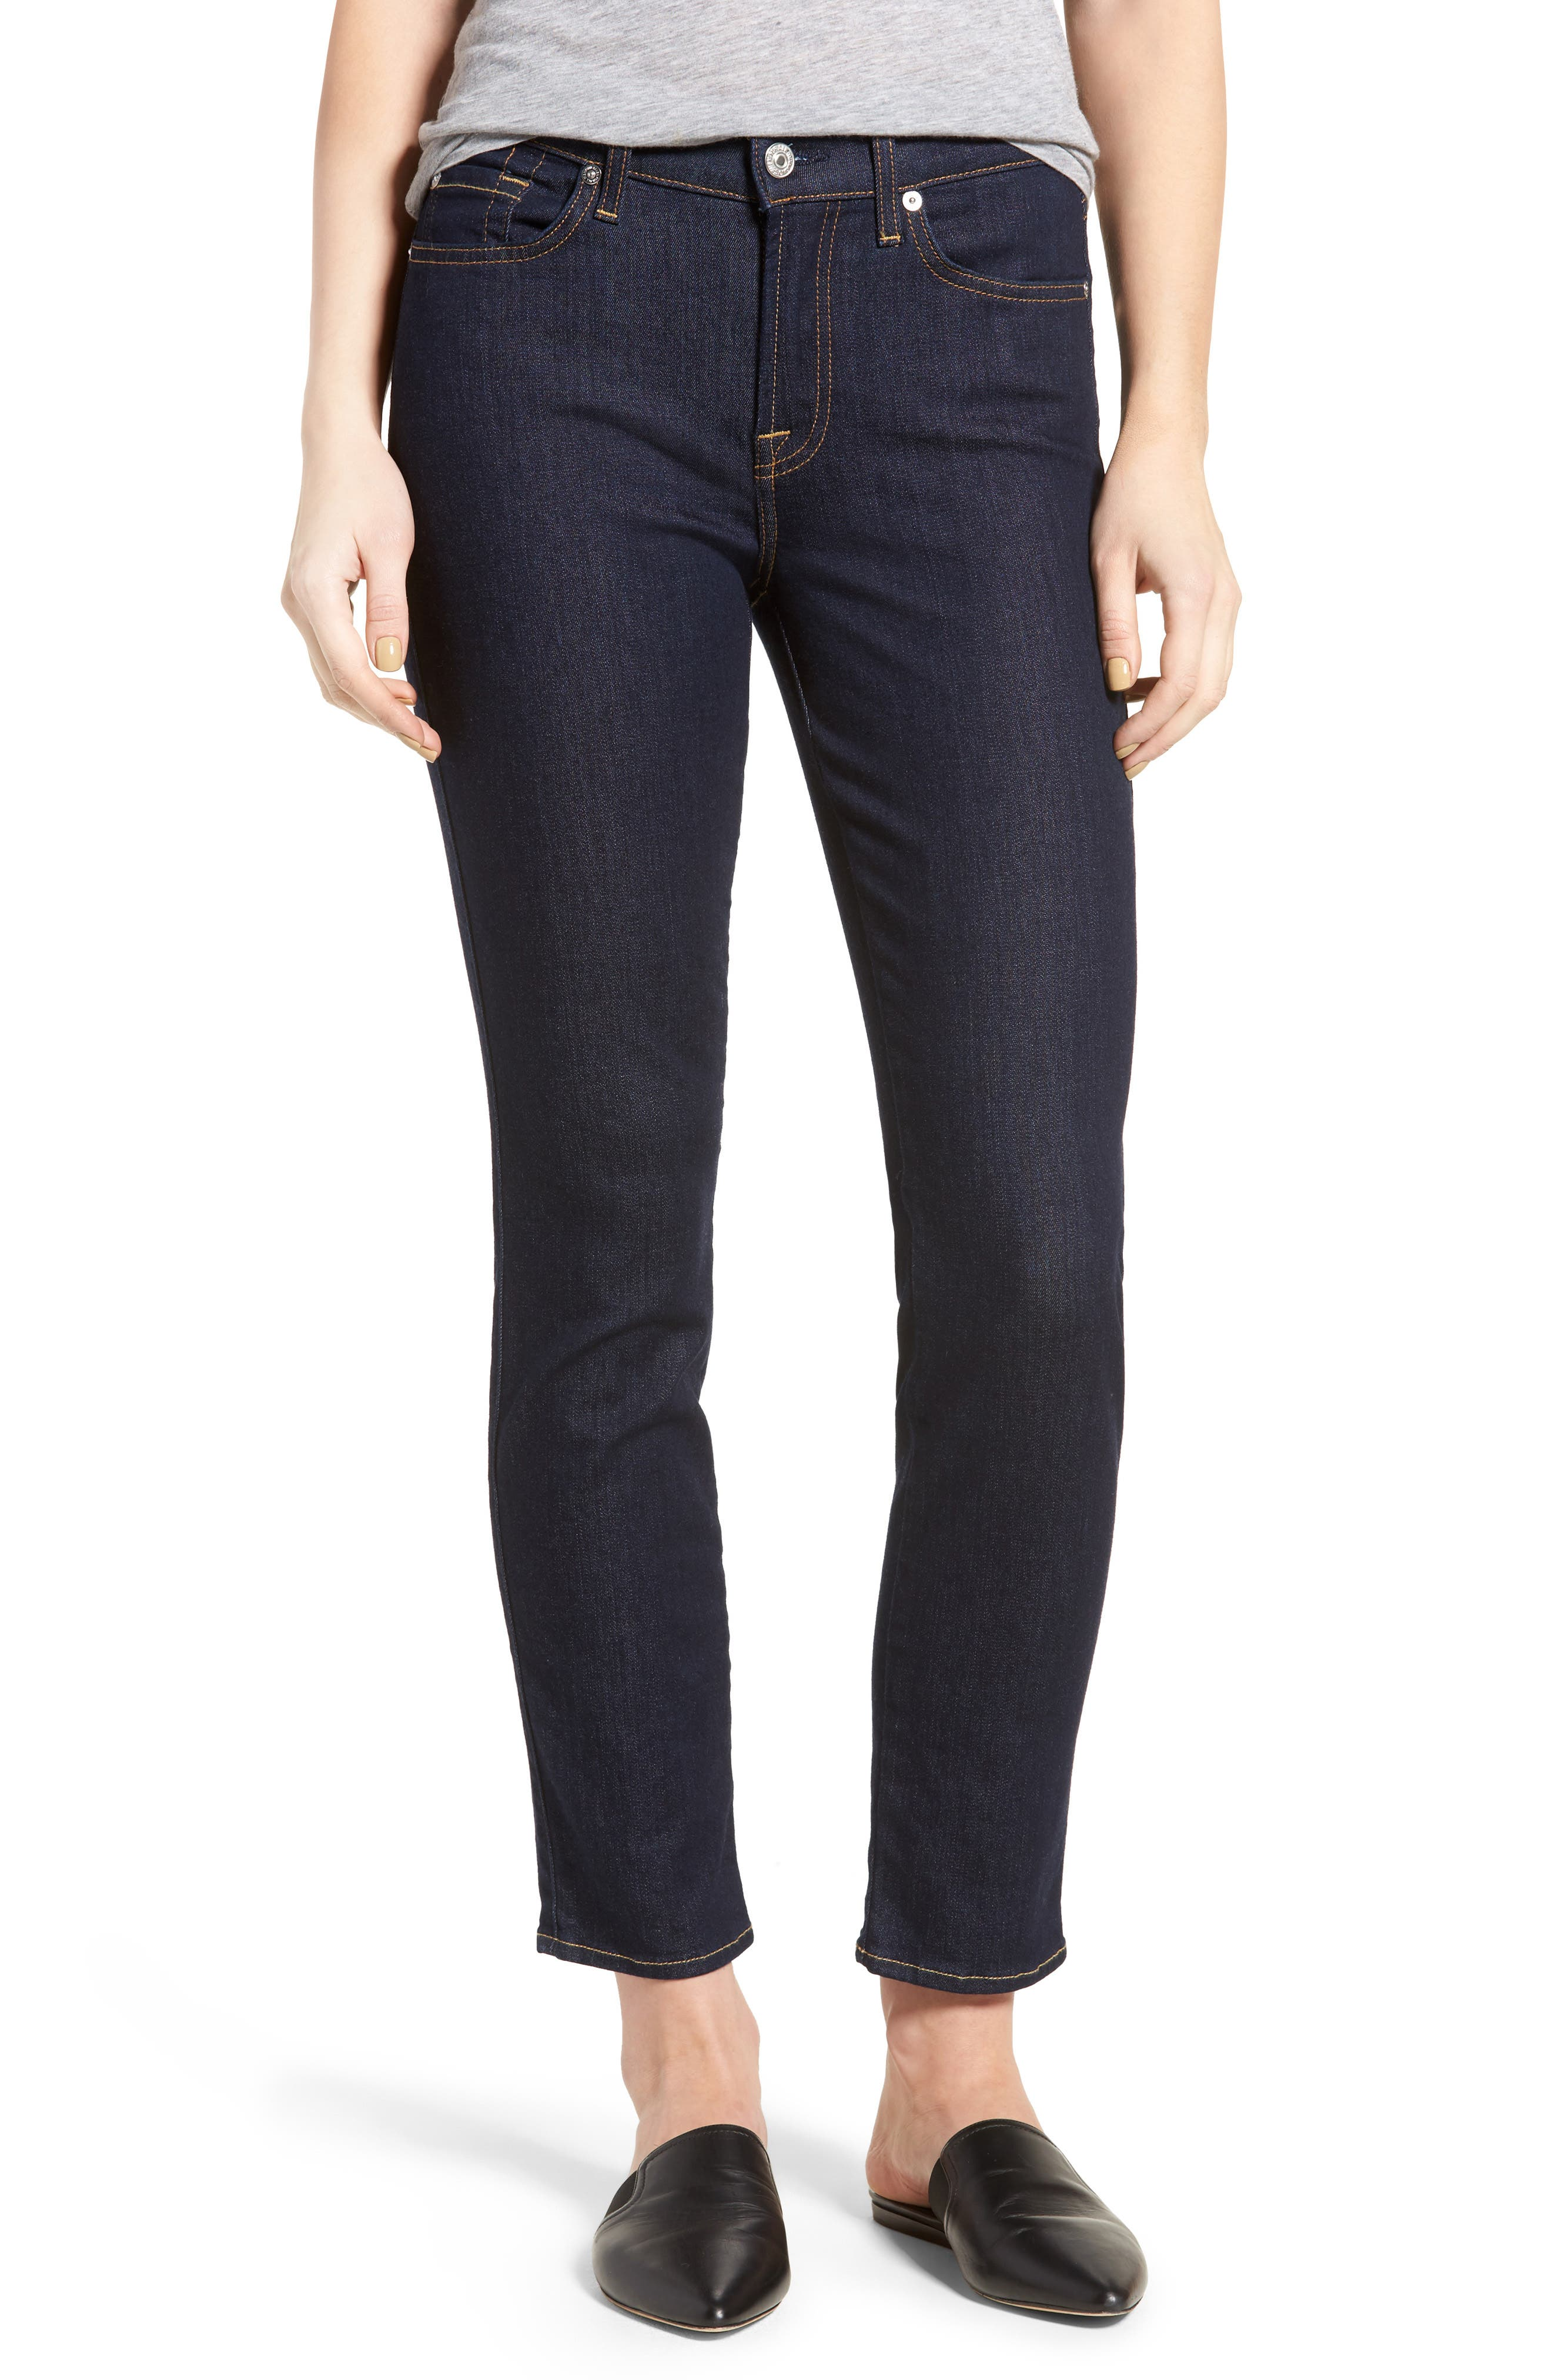 b(air) Roxanne Ankle Skinny Jeans,                             Main thumbnail 1, color,                             401